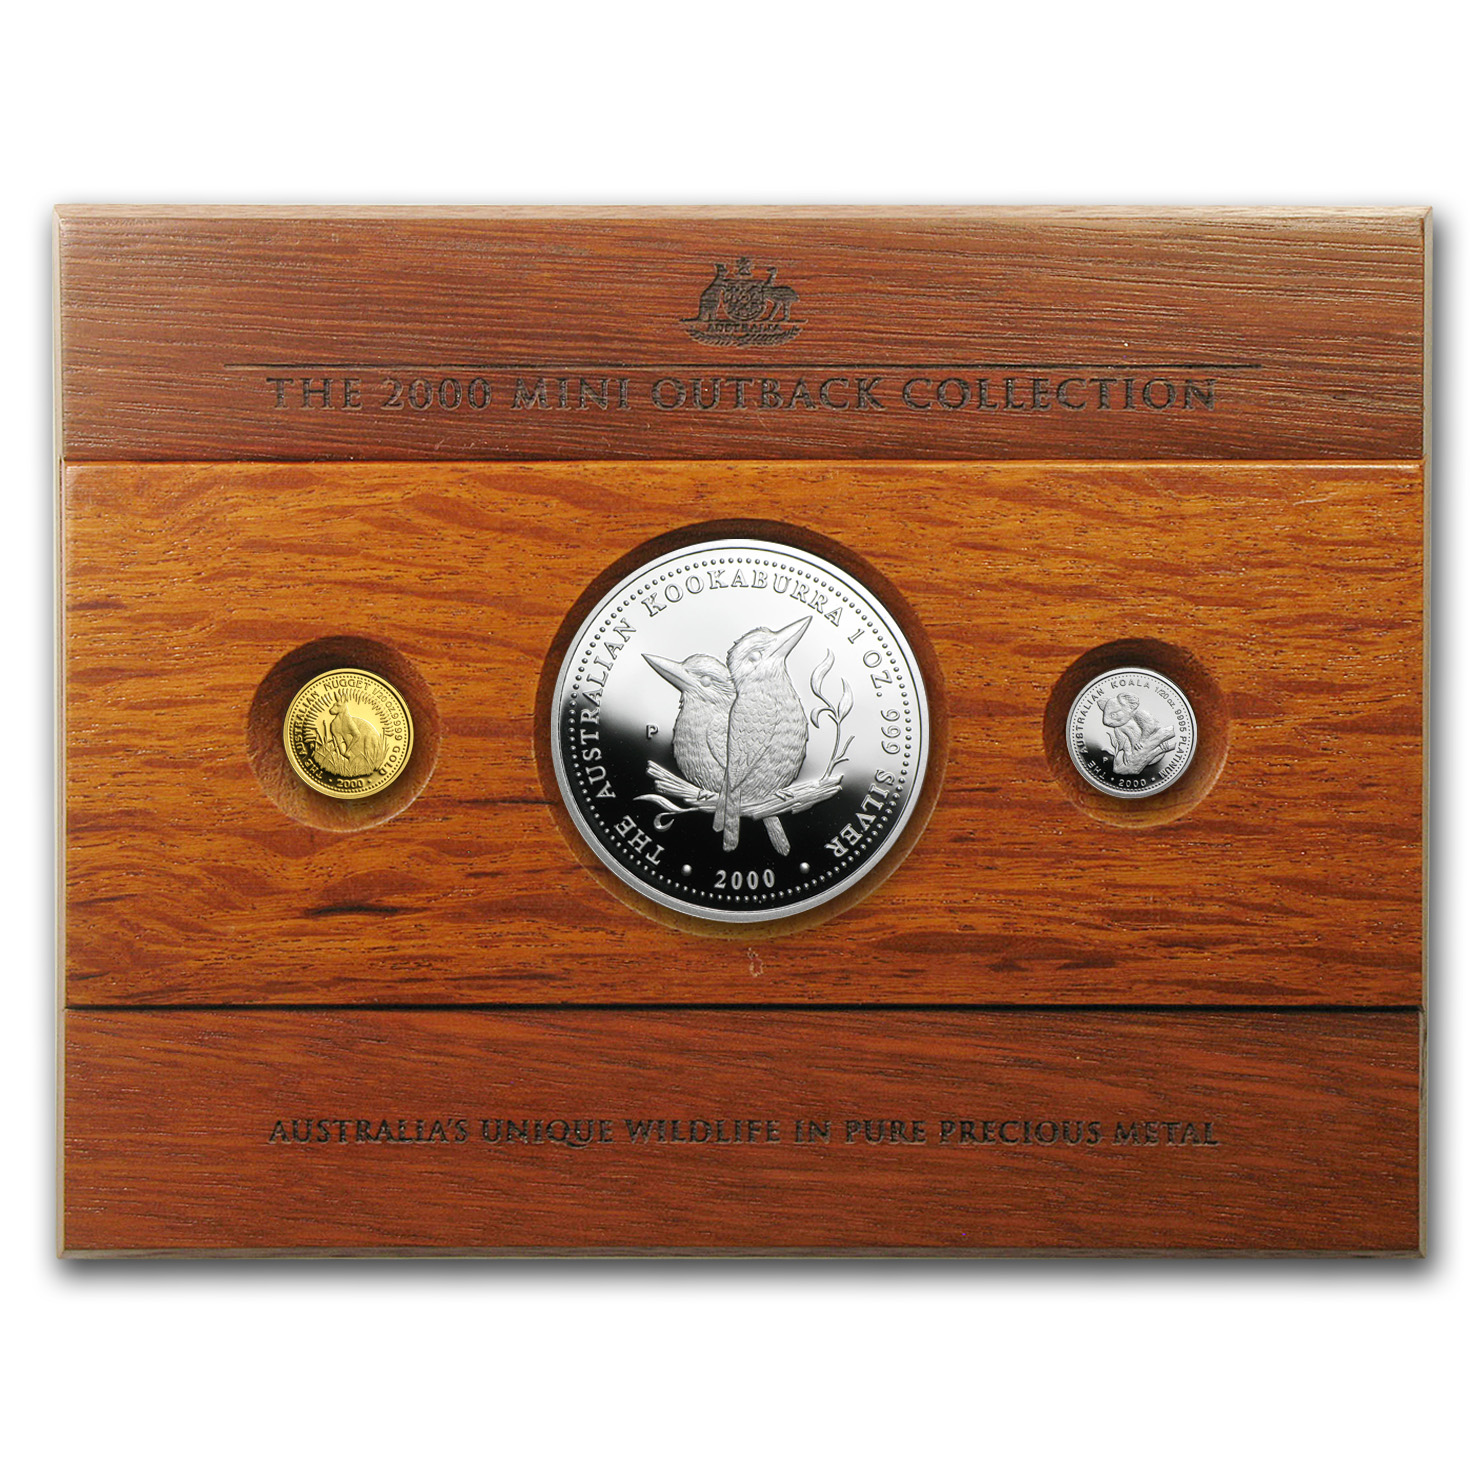 2000 Australia 3-Coin Proof Mini Outback Collection